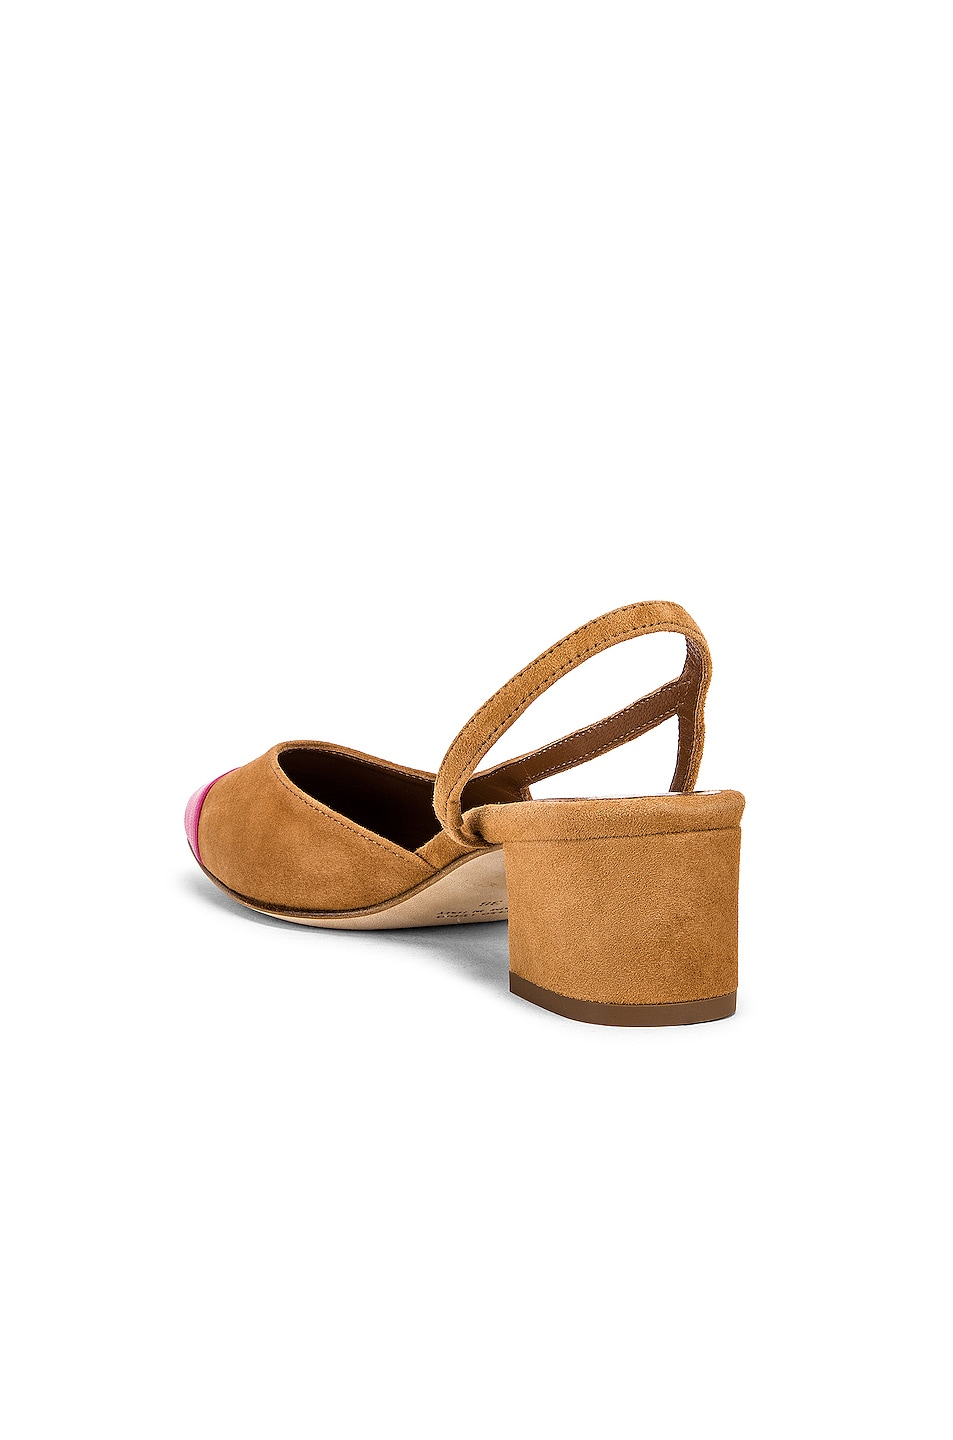 Image 3 of Paris Texas Suede Sling Back in Tan & Pink